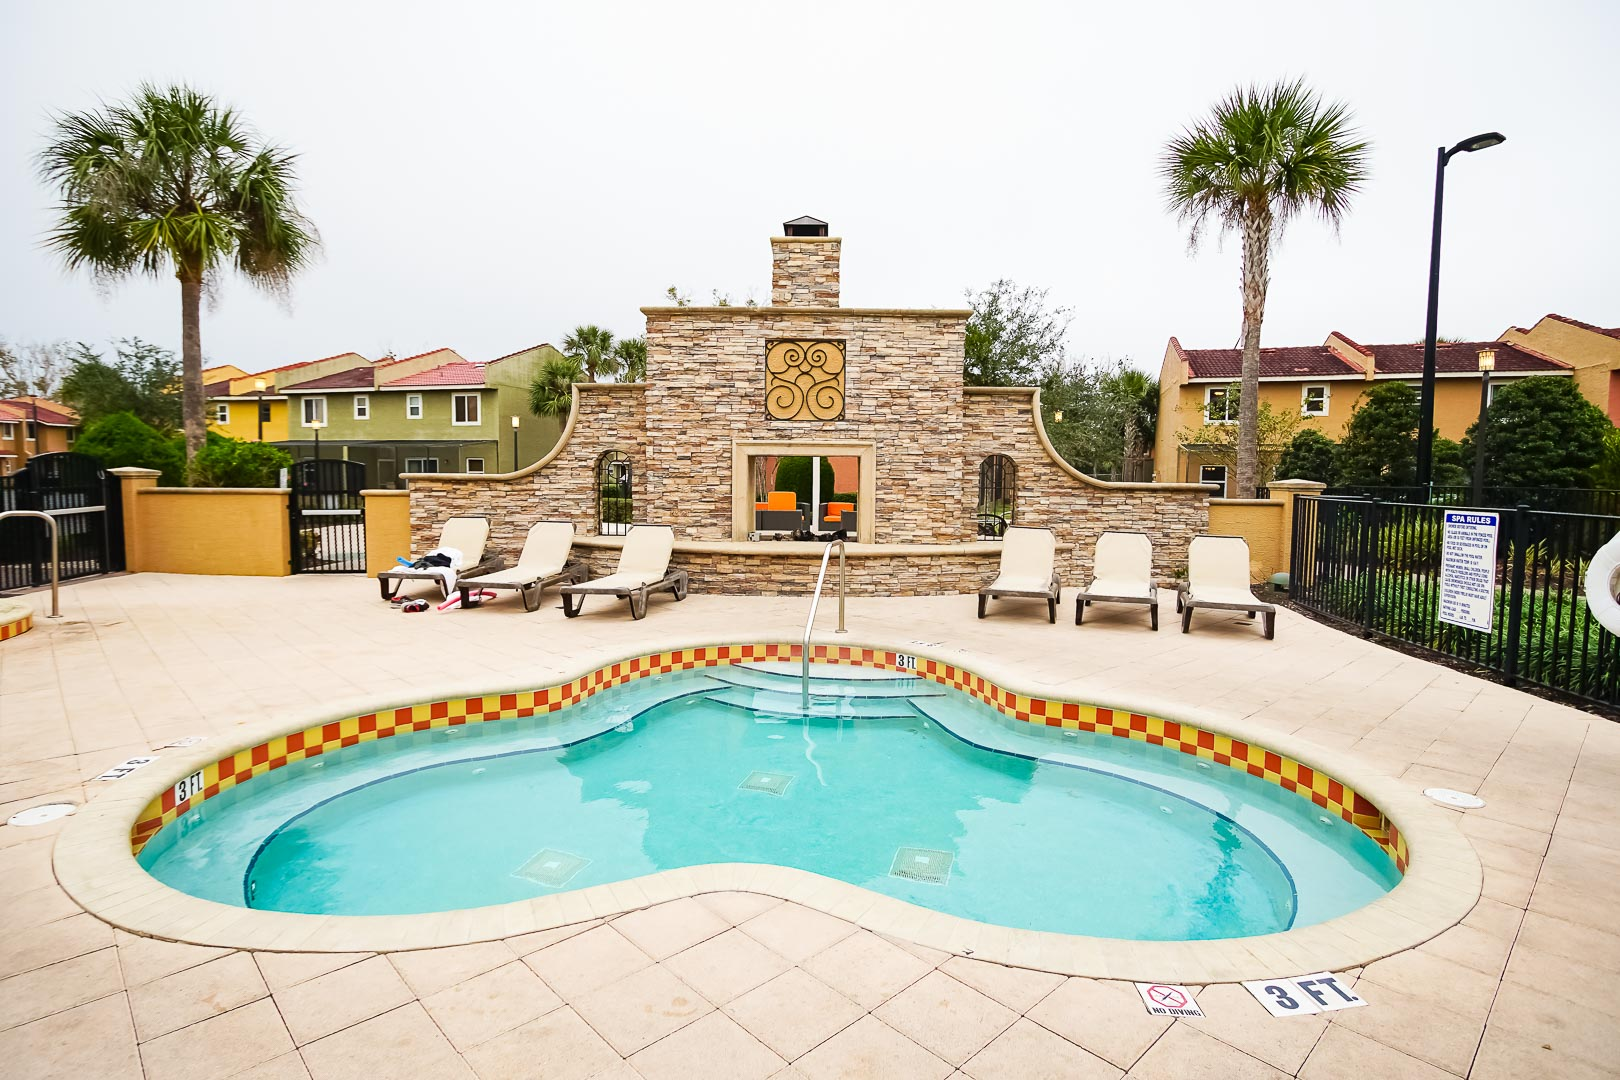 A relaxing outdoor jacuzzi at VRI's Fantasy World Resort in Florida.